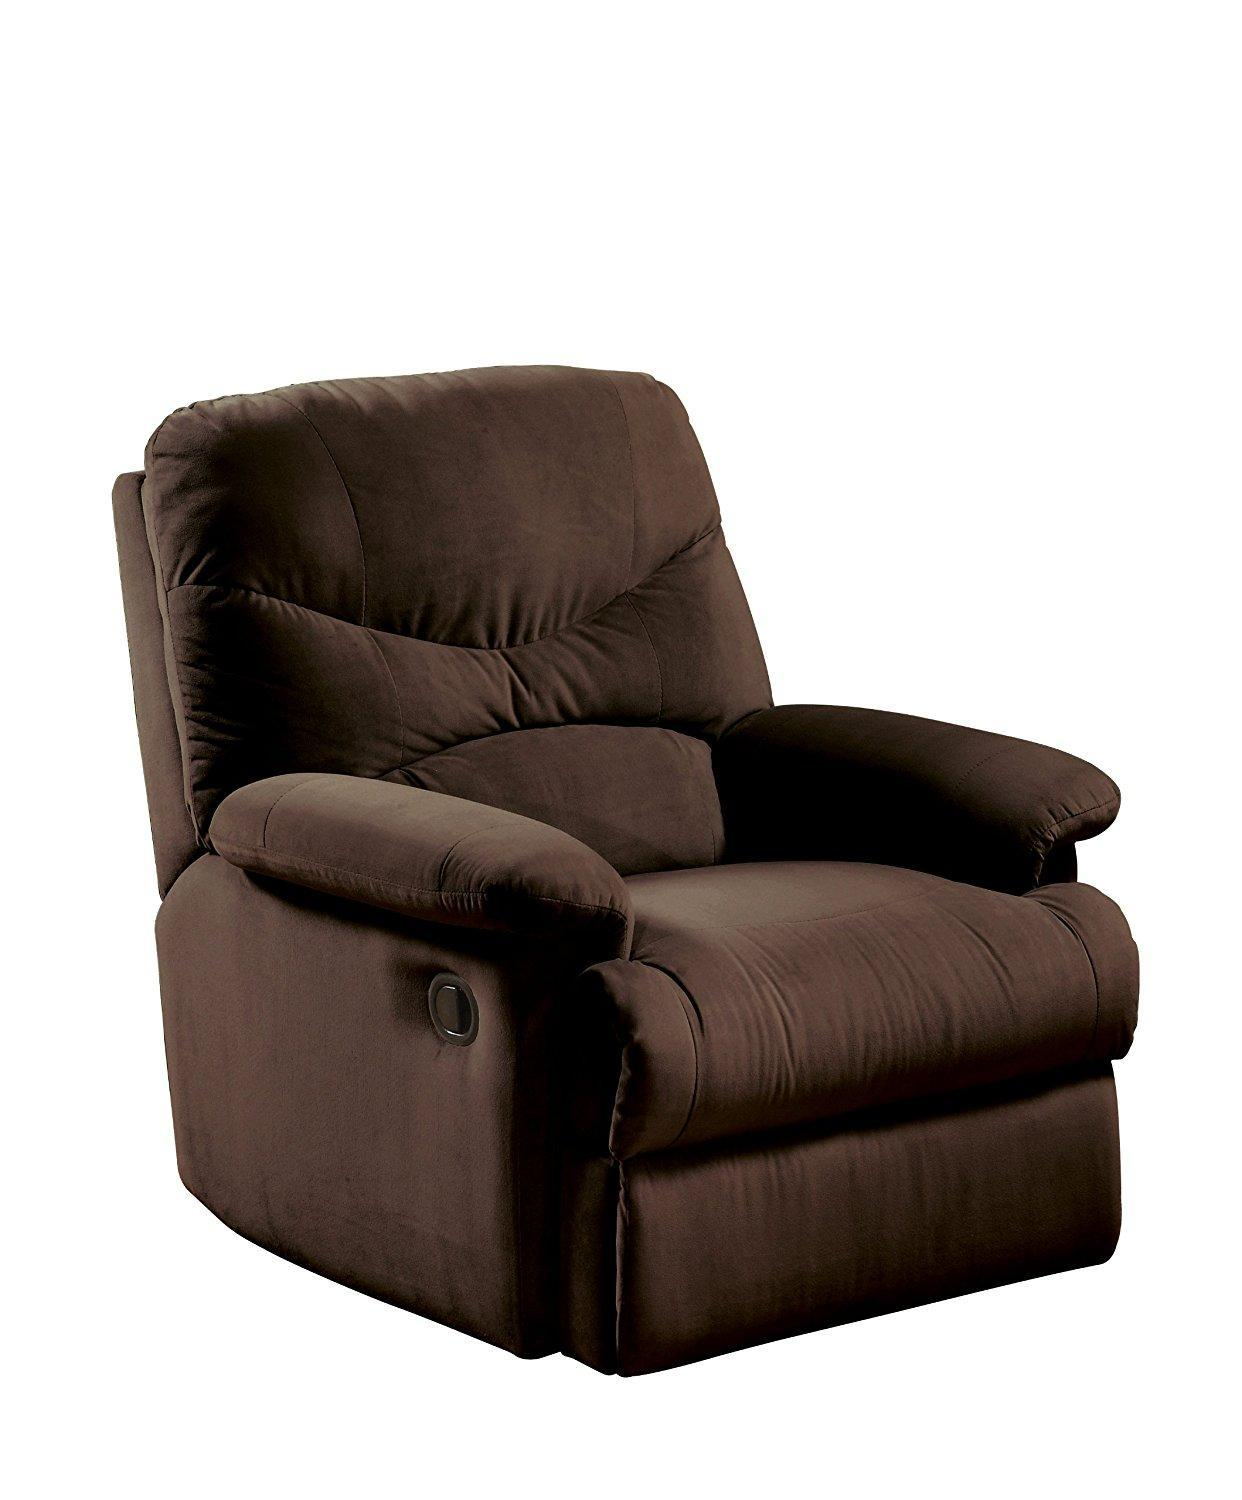 View larger  sc 1 st  Amazon.com & Amazon.com: ACME Arcadia Chocolate Microfiber Recliner: Kitchen ... islam-shia.org